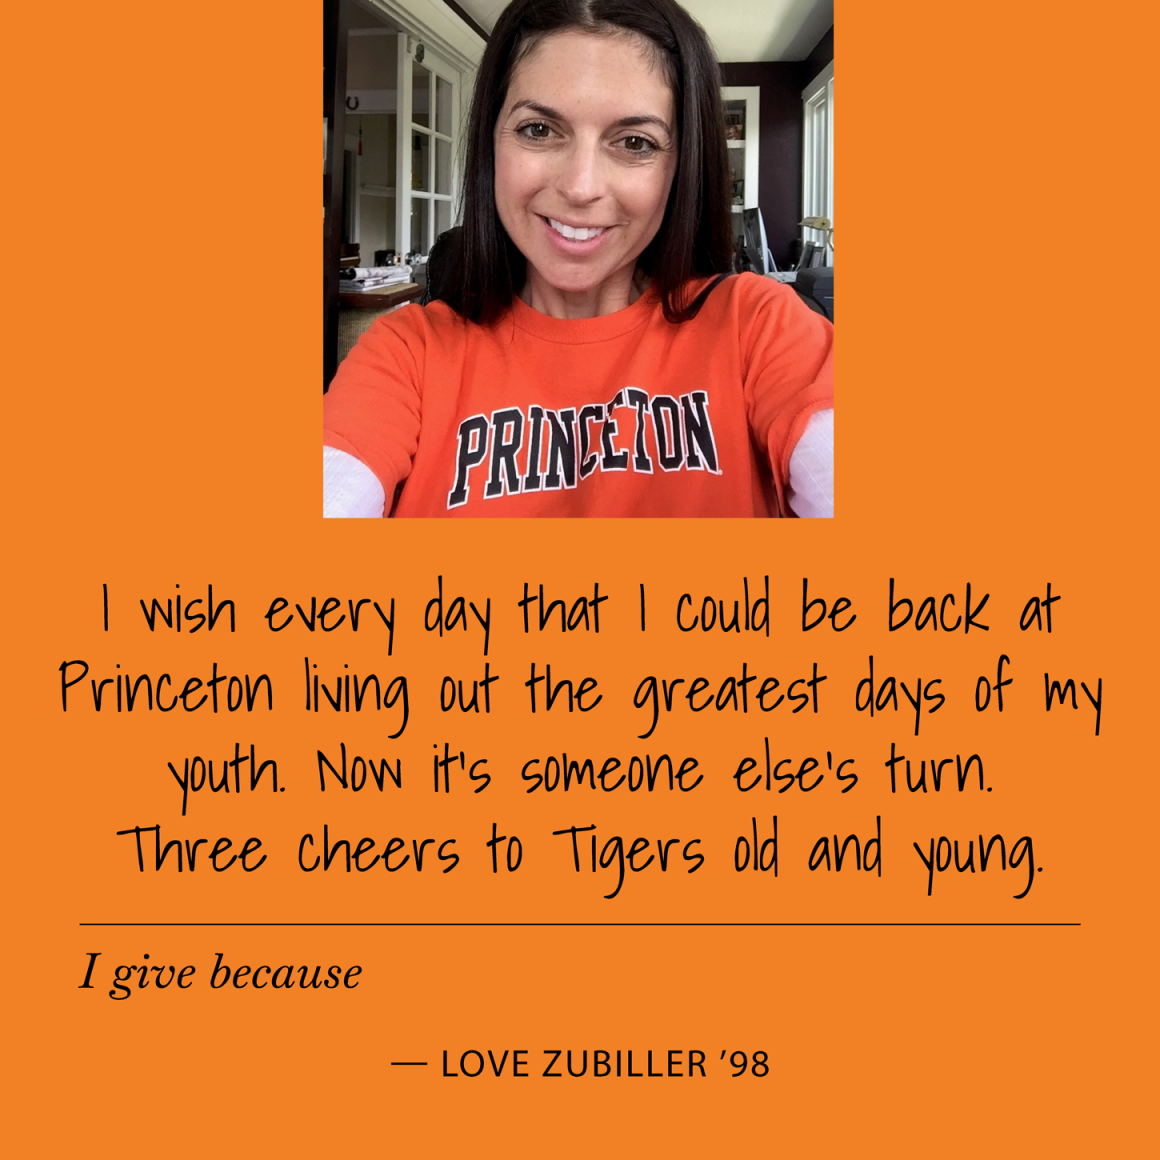 I give because I wish everyday I could be back at Princeton living out the greatest days of my youth. Now it's someone else's turn. Three cheers to Tigers old and young. Love Zubiller '98